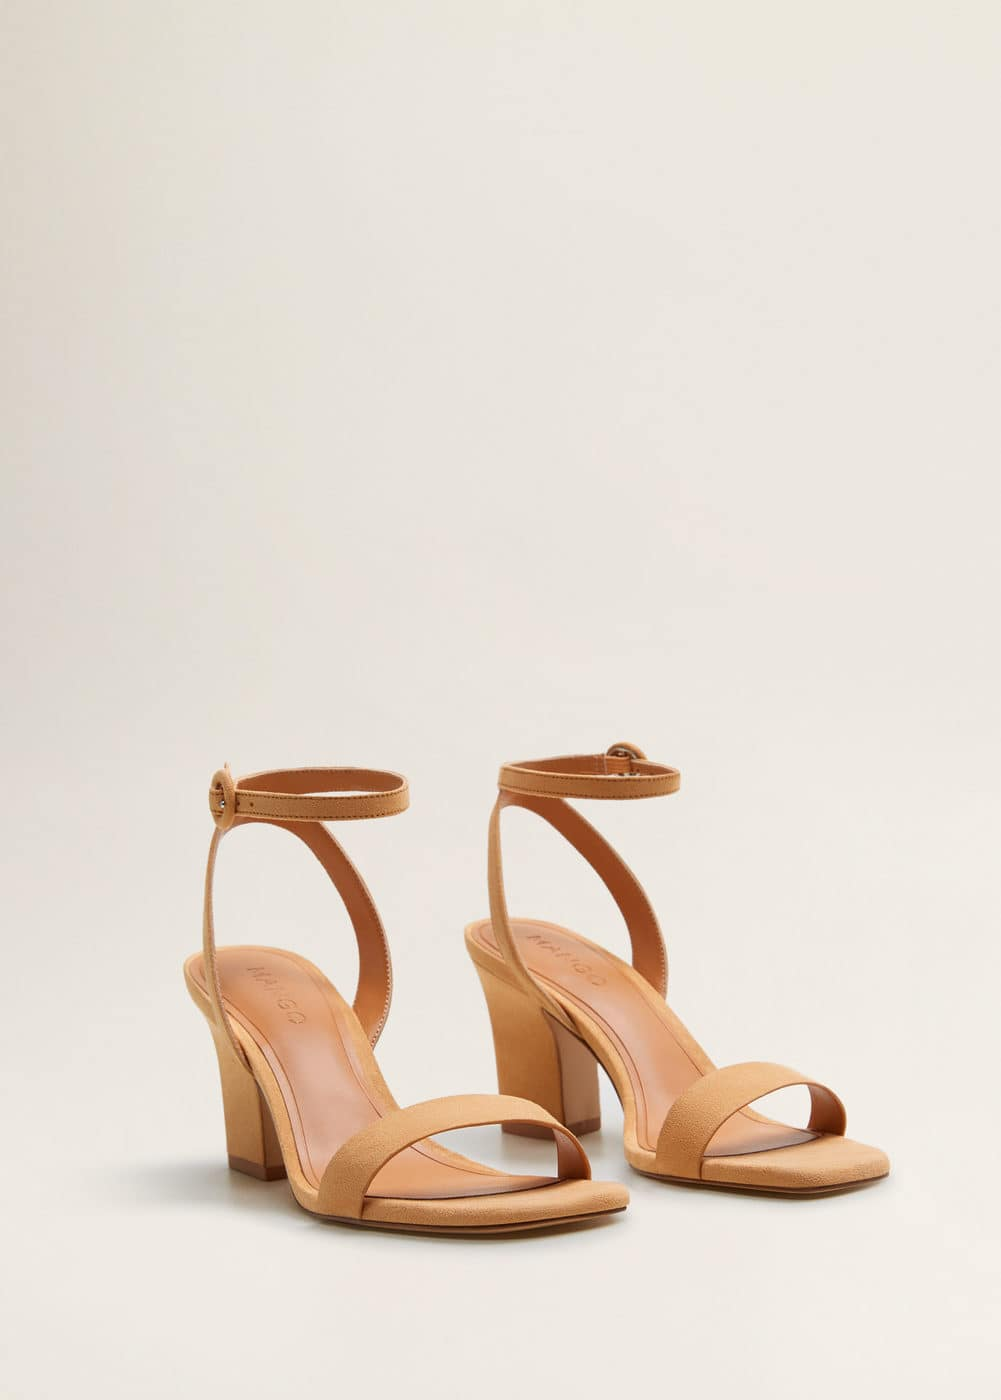 Sandals Ankle Ankle Cuff Ankle Sandals Cuff Cuff vn0OmwN8